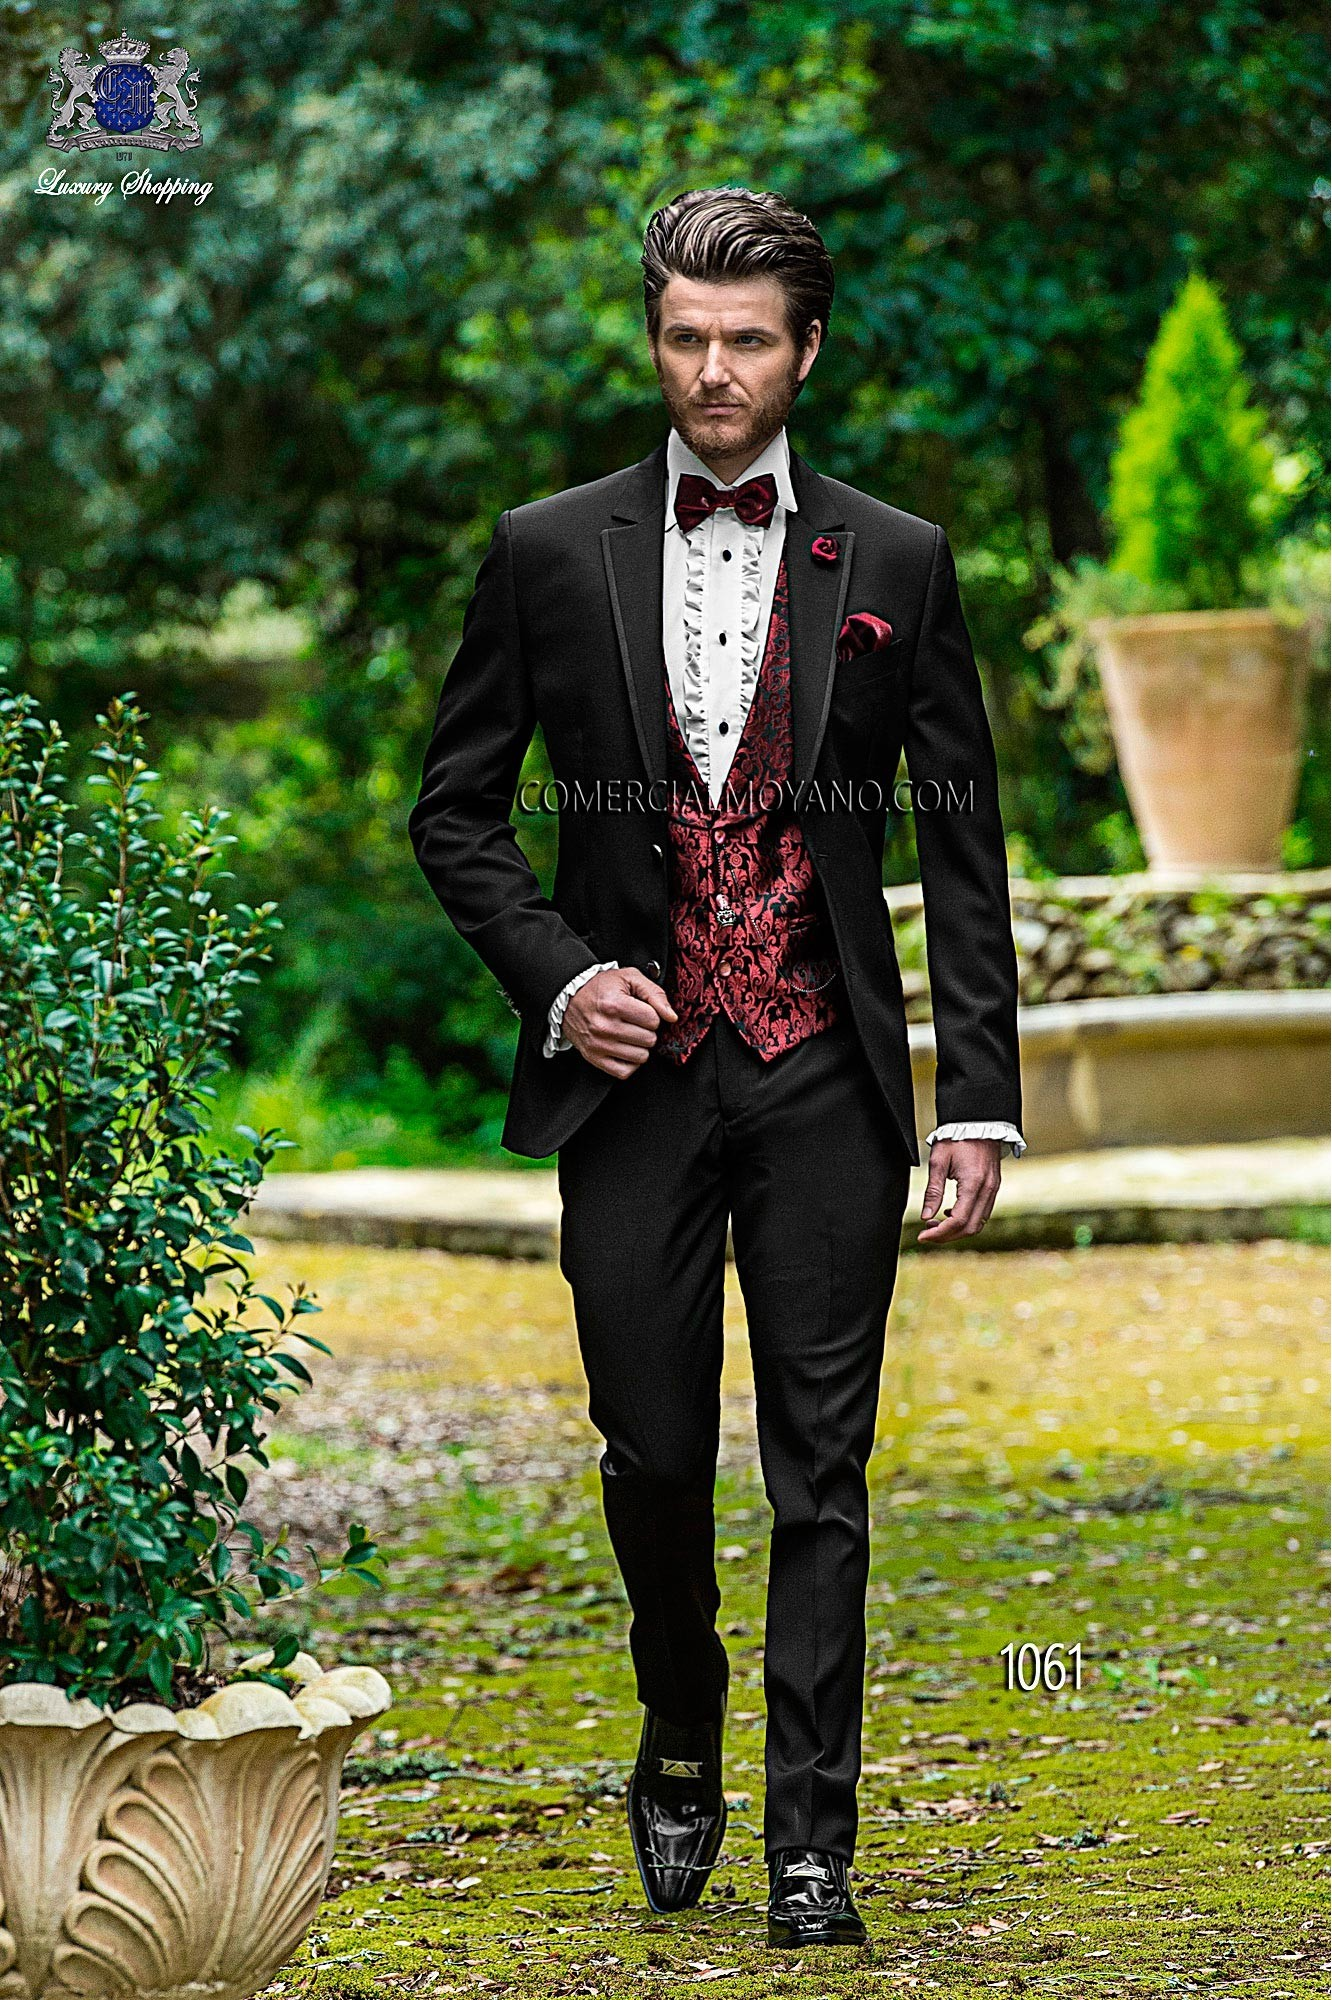 Fashion Black Men Wedding Suit Model 1061 Mario Moyano Collection